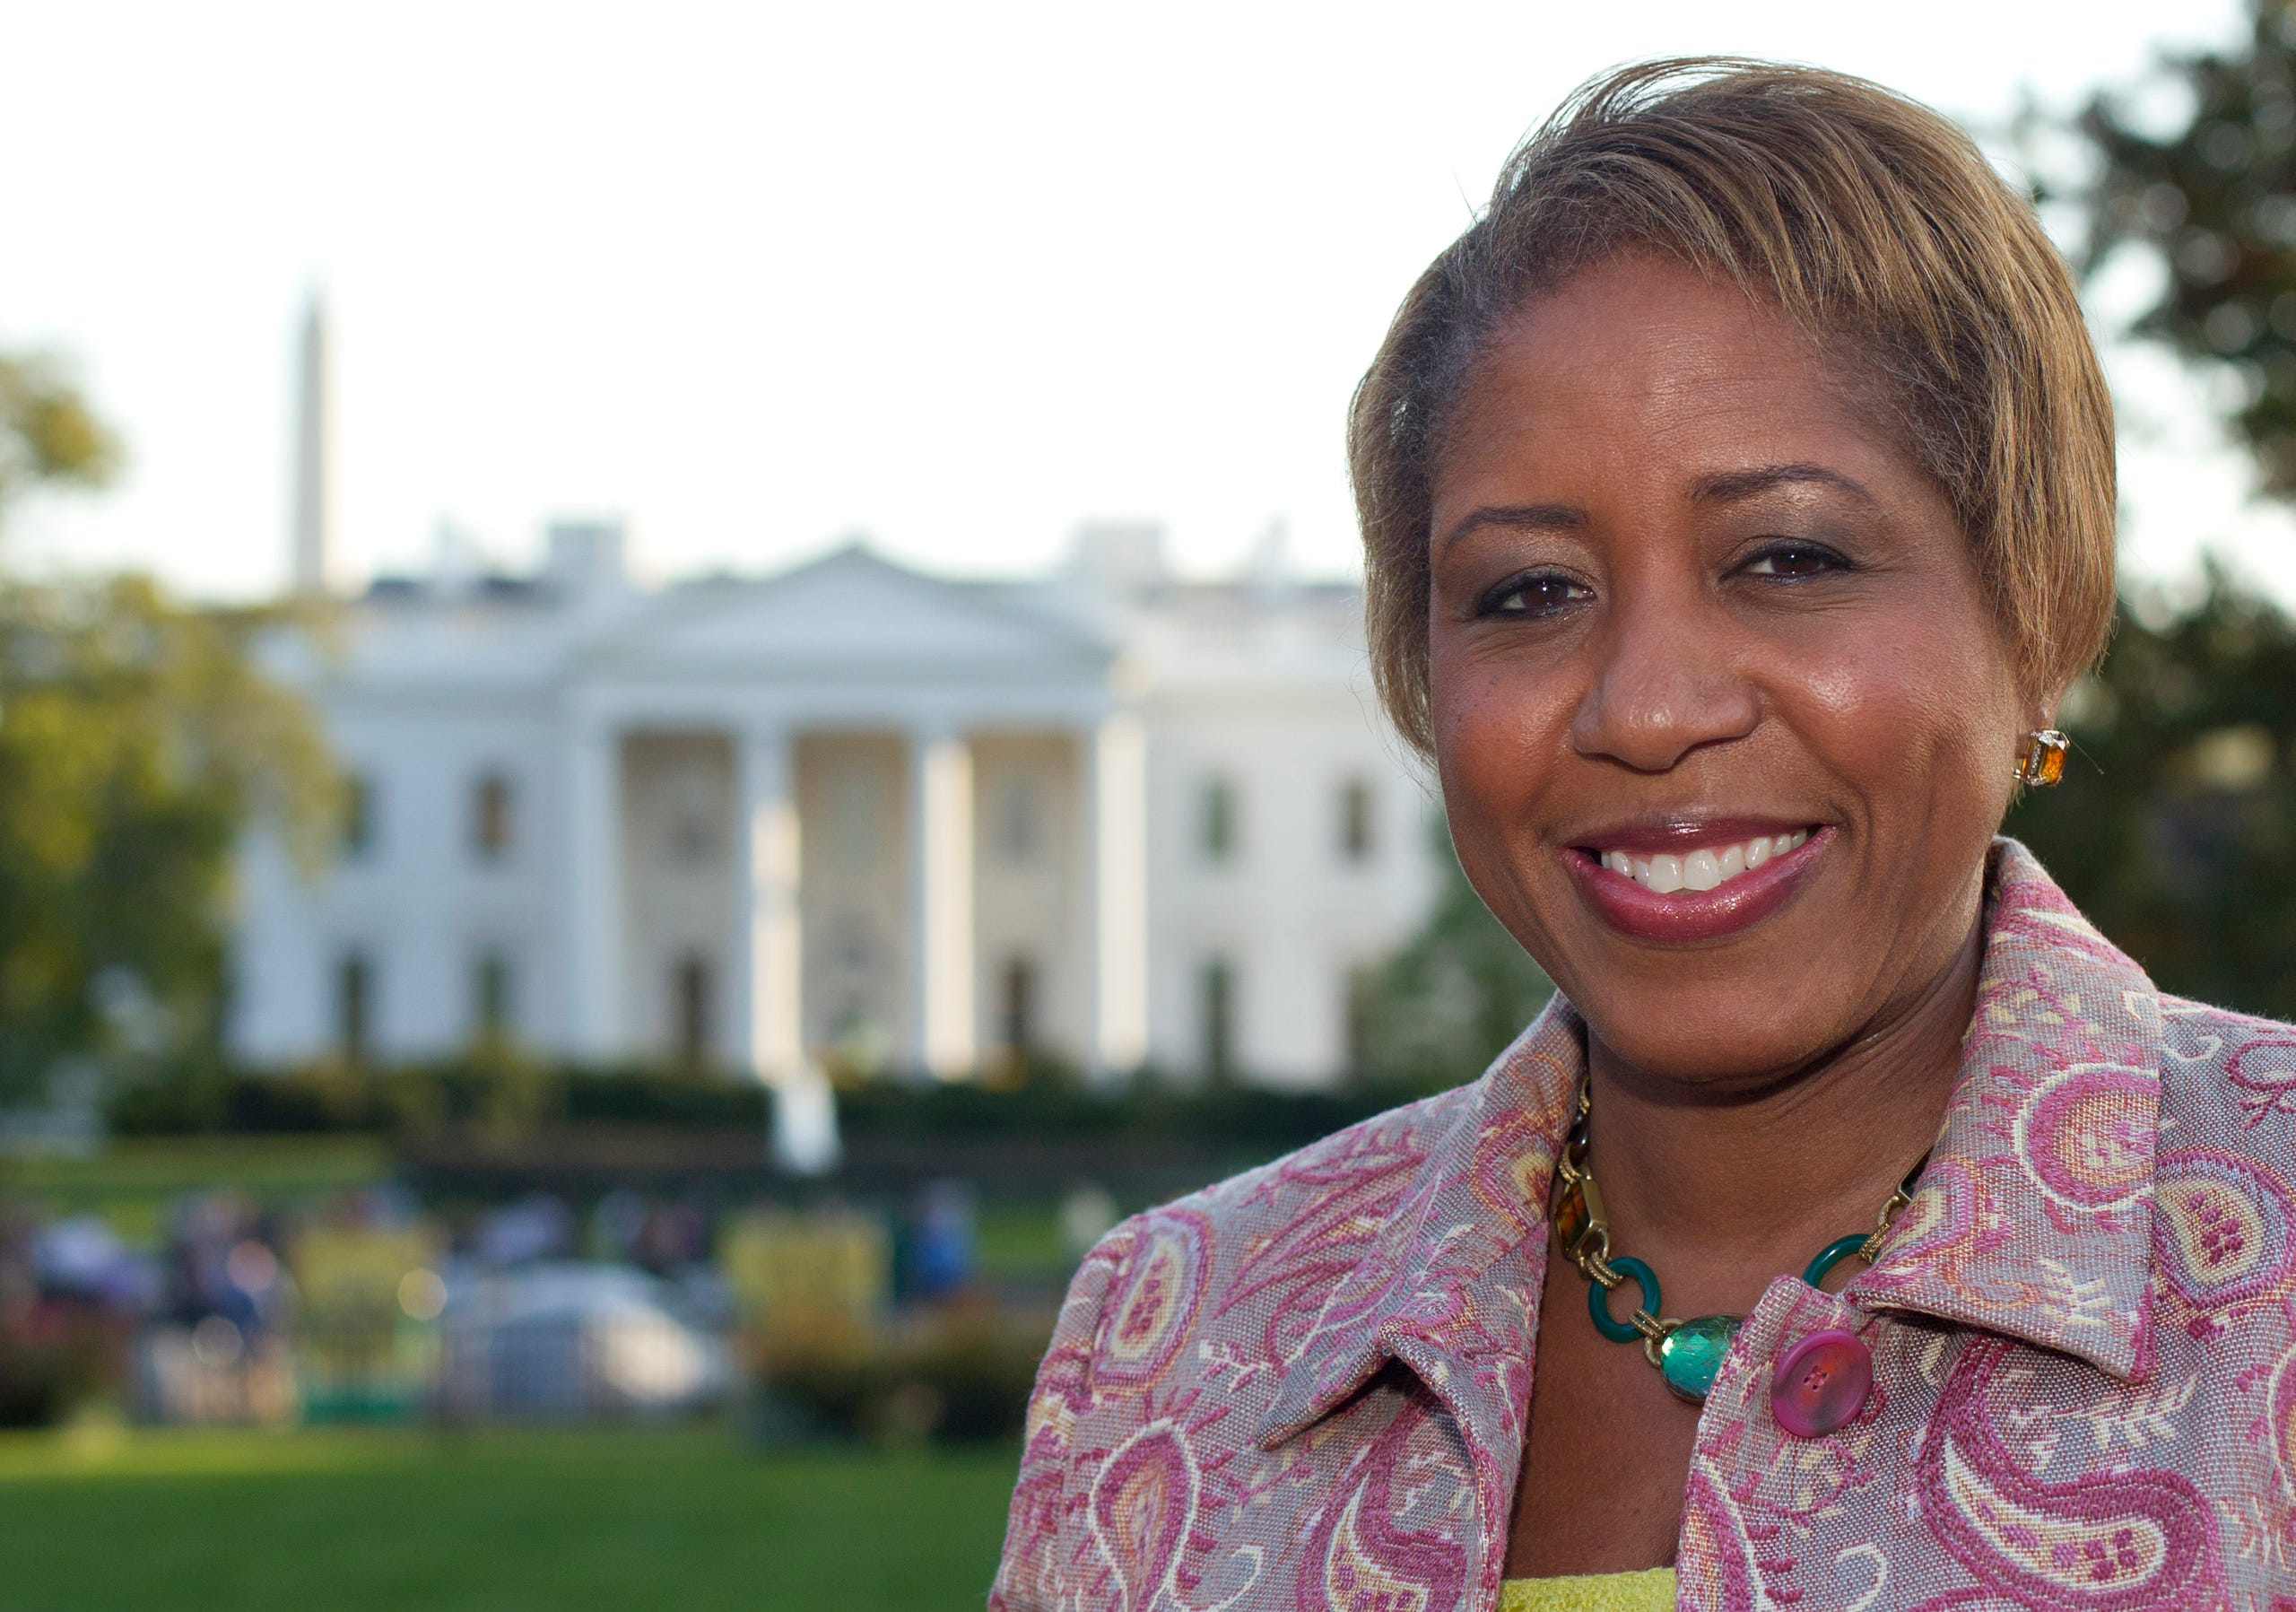 On May 5, 2017, the White House fired White House chief usher Angella Reid, the person responsible for managing the residence and staff and overseeing events. No reason was given for Reid's dismissal. In this Oct. 18, 201  photo, the then-incoming White House chief usher Angella Reid is photographed in Lafayette Park across from the White House in Washington.